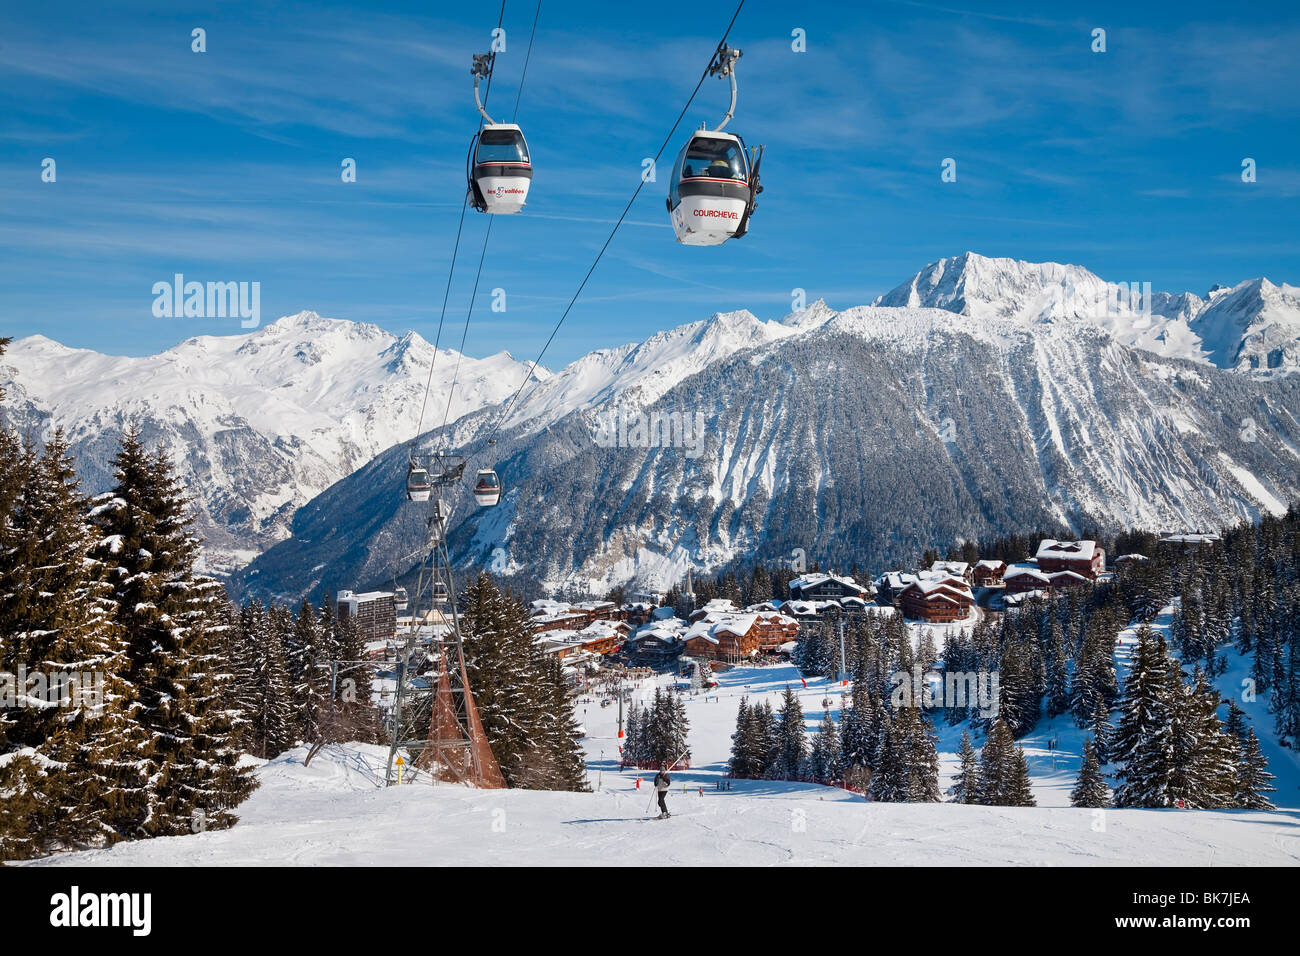 Courchevel 1850 ski resort in the Three Valleys (Les Trois Vallees), Savoie, French Alps, France, Europe - Stock Image